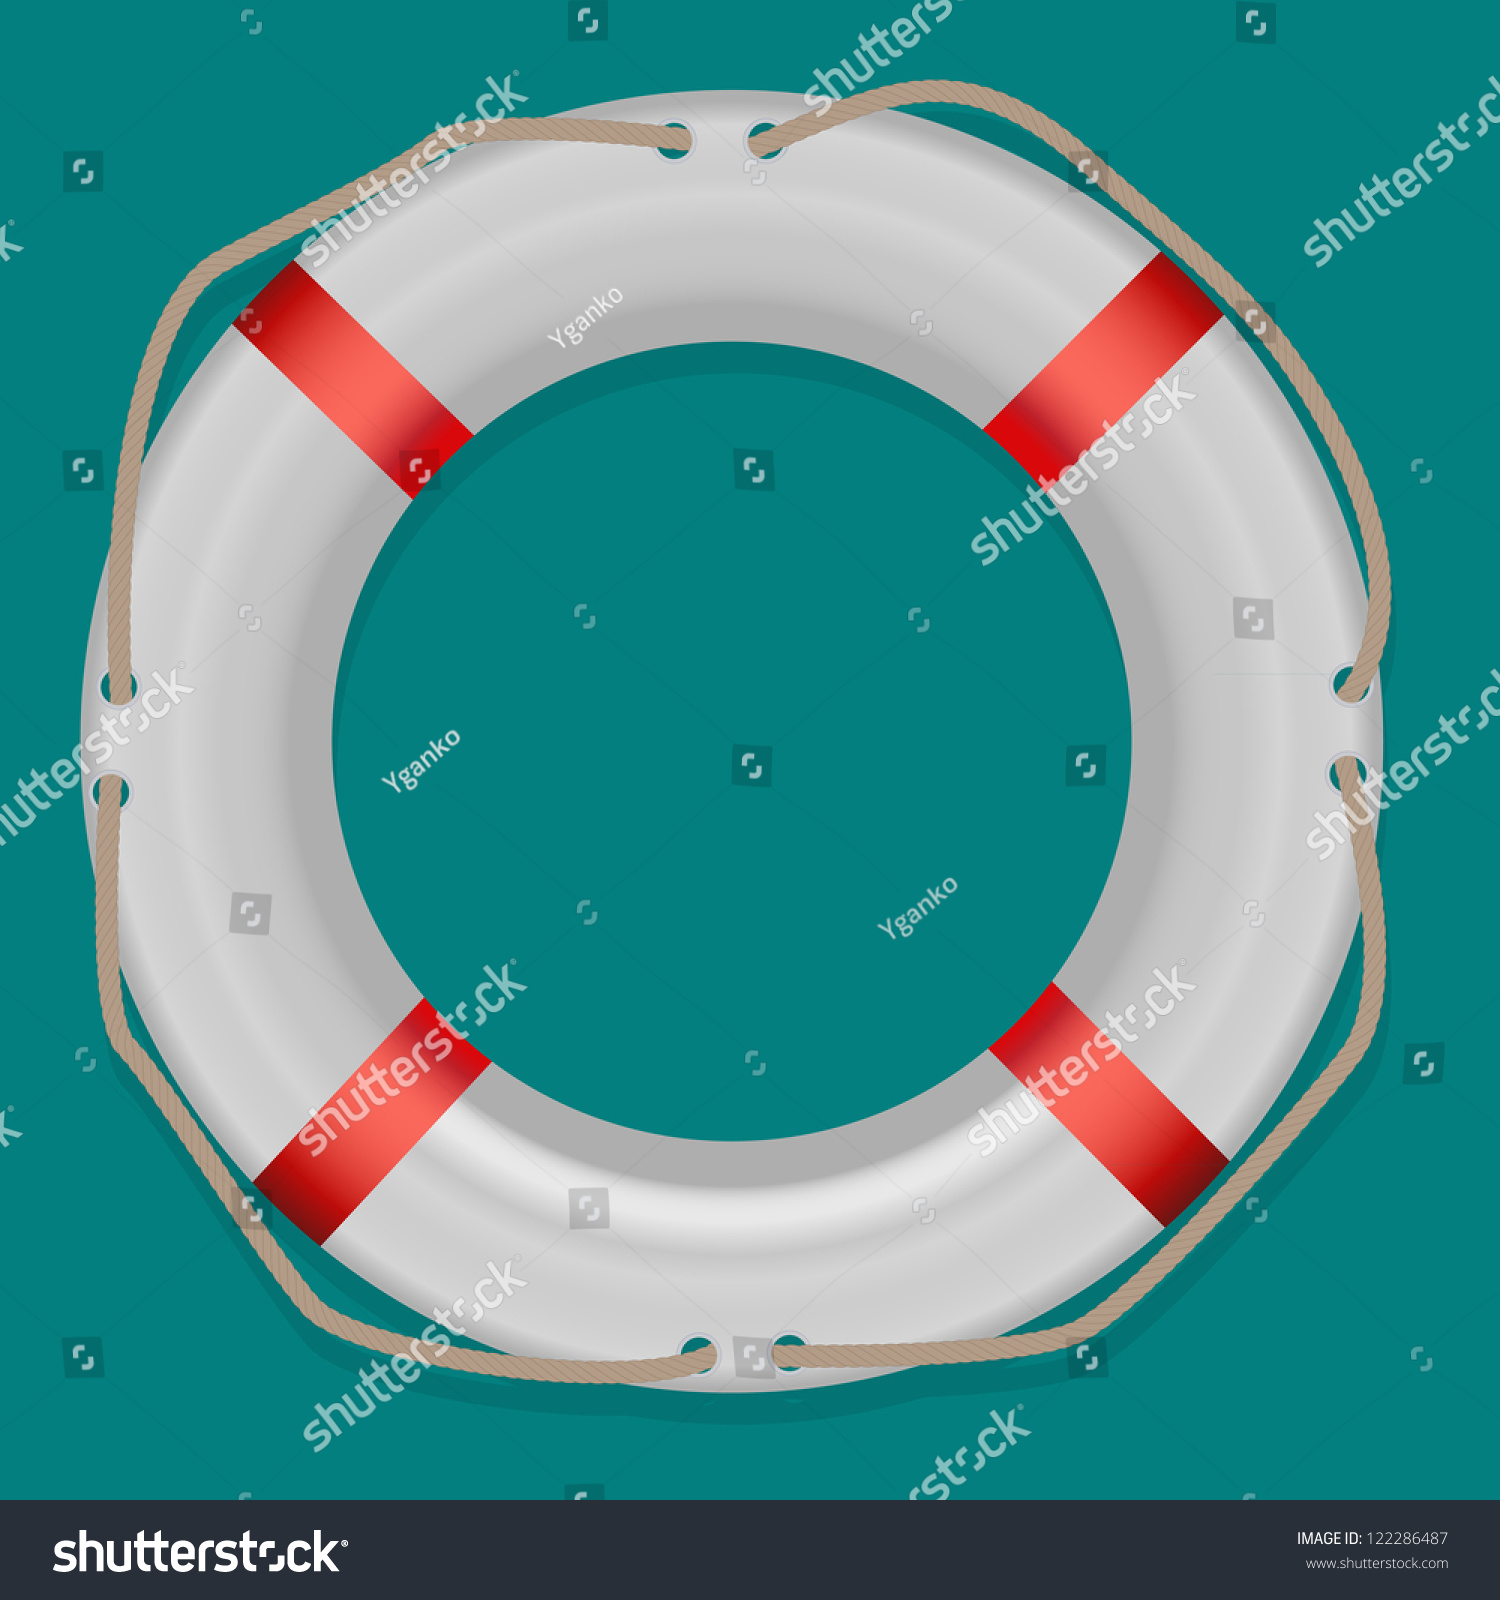 Life Buoy, Isolated On White Background, Vector Illustration - 122286487 : Shutterstock